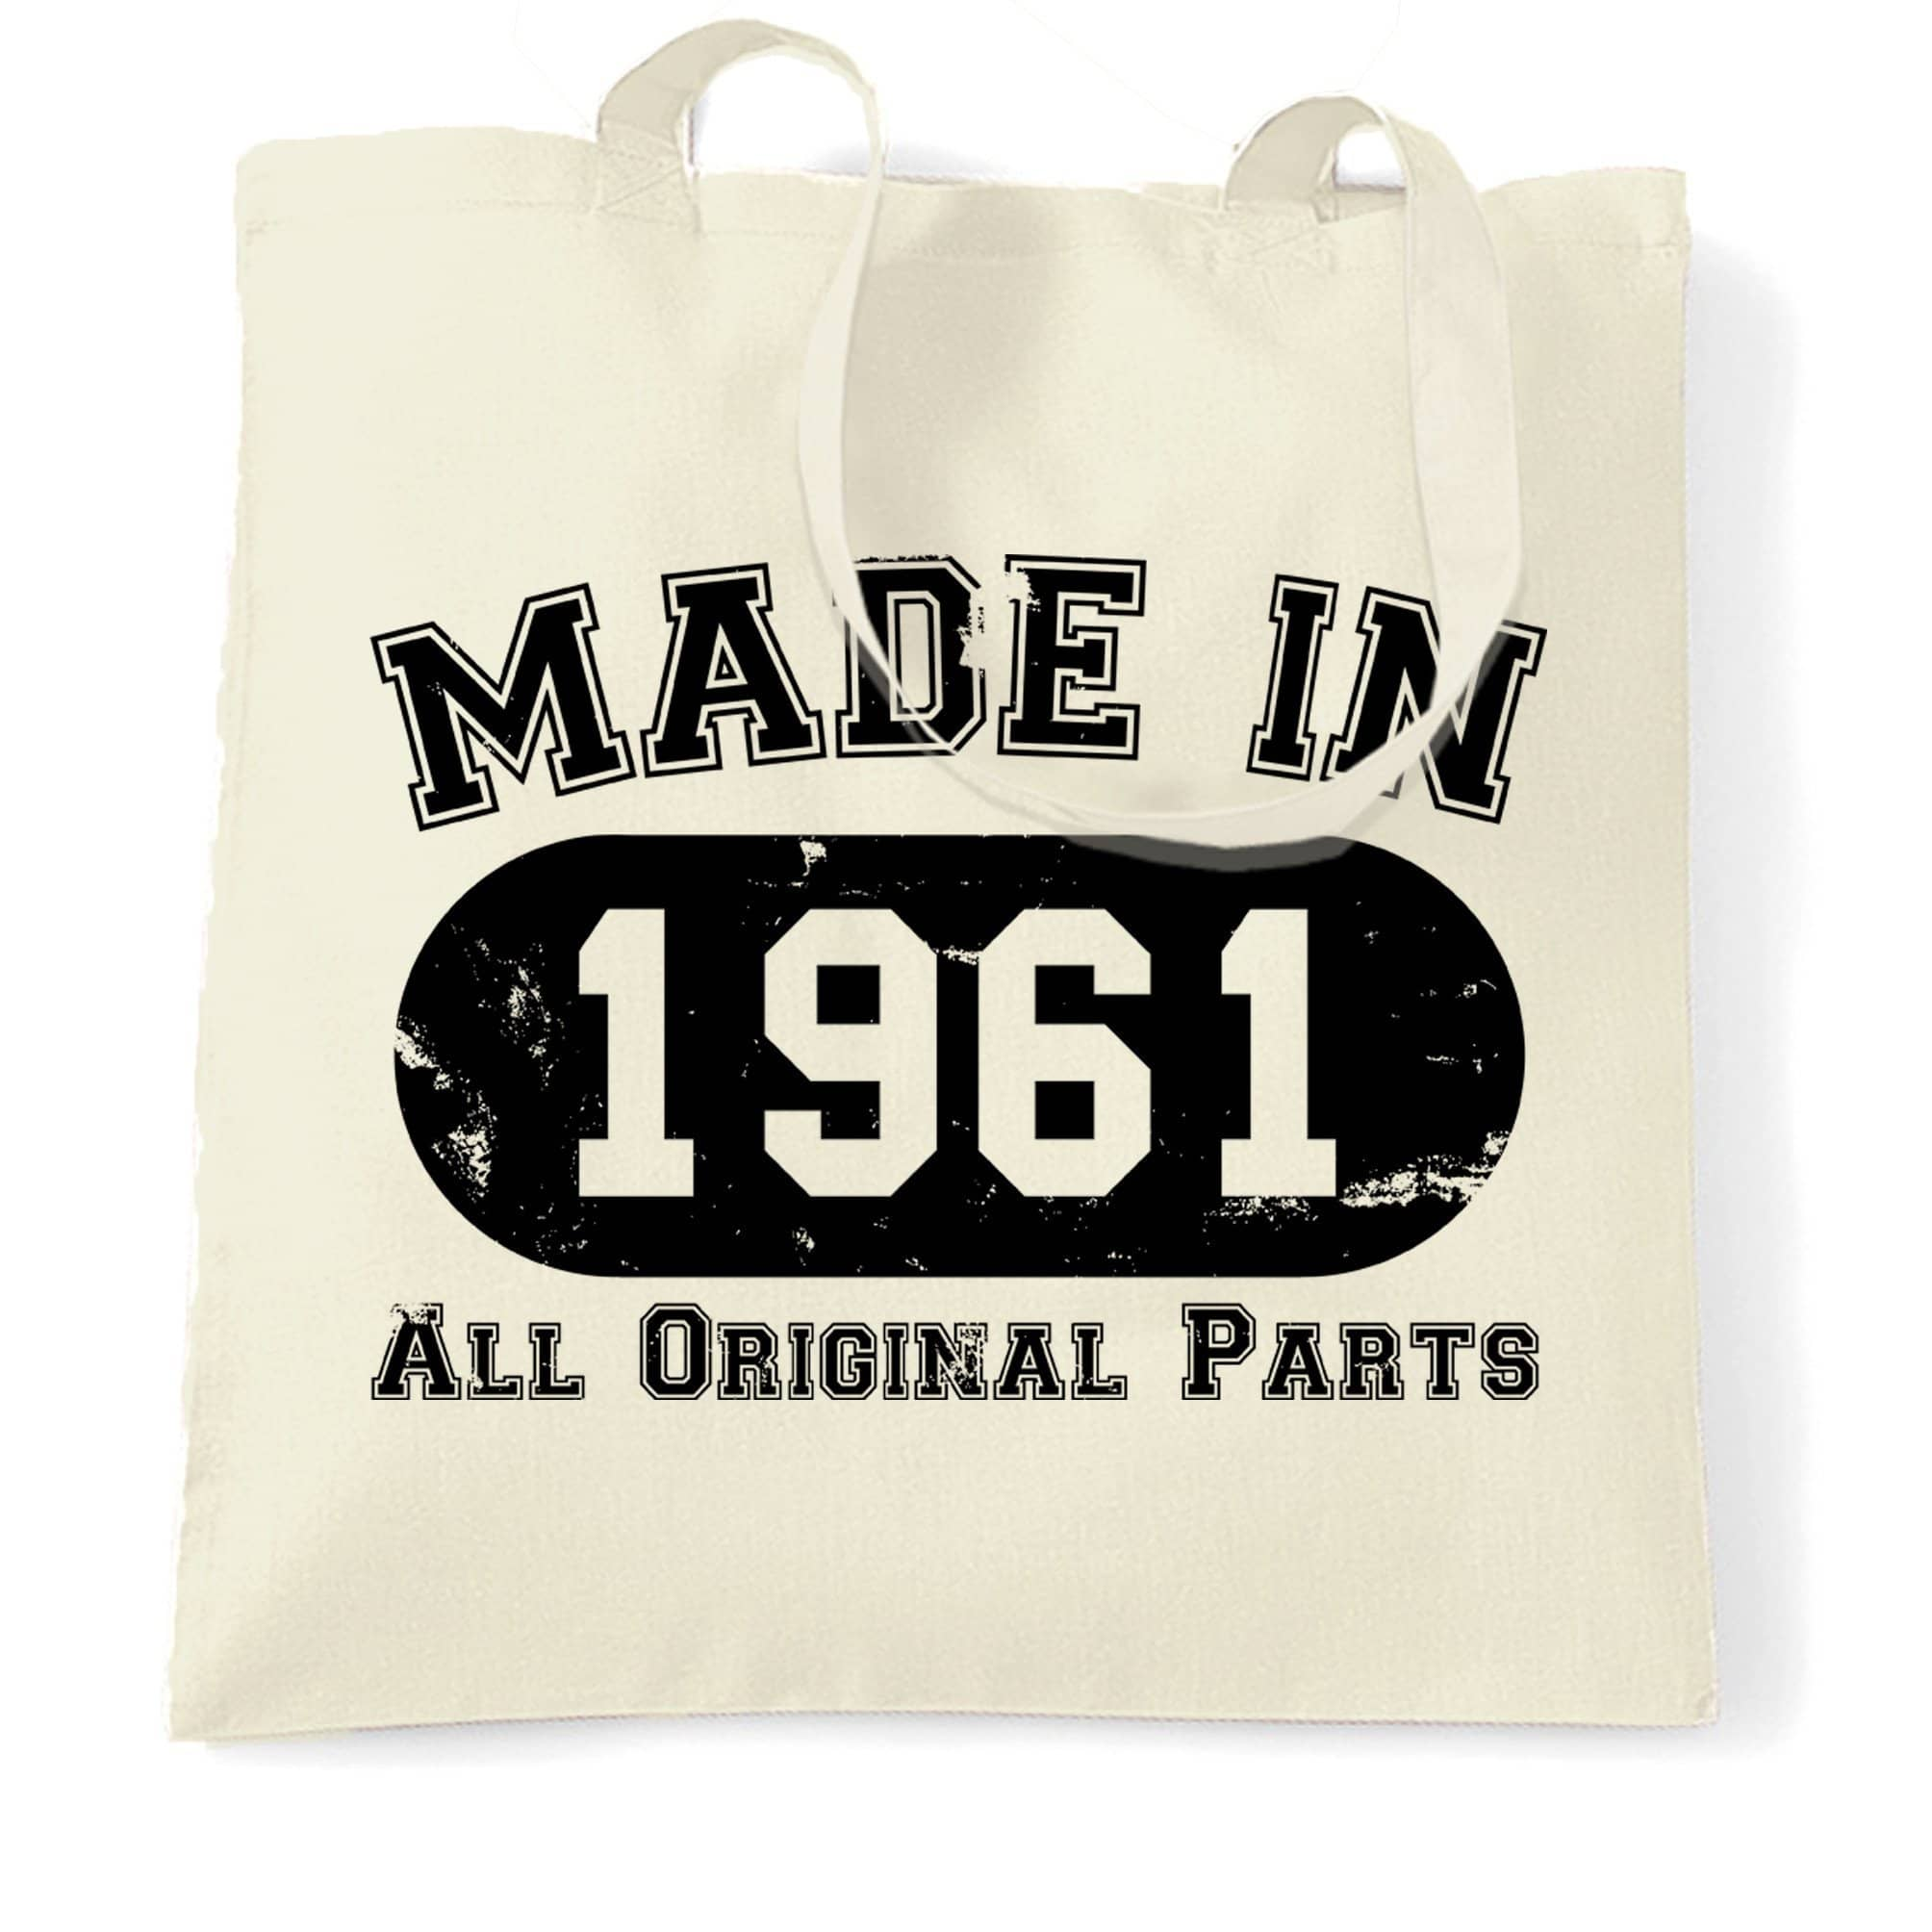 Made in 1961 All Original Parts Tote Bag [Distressed]